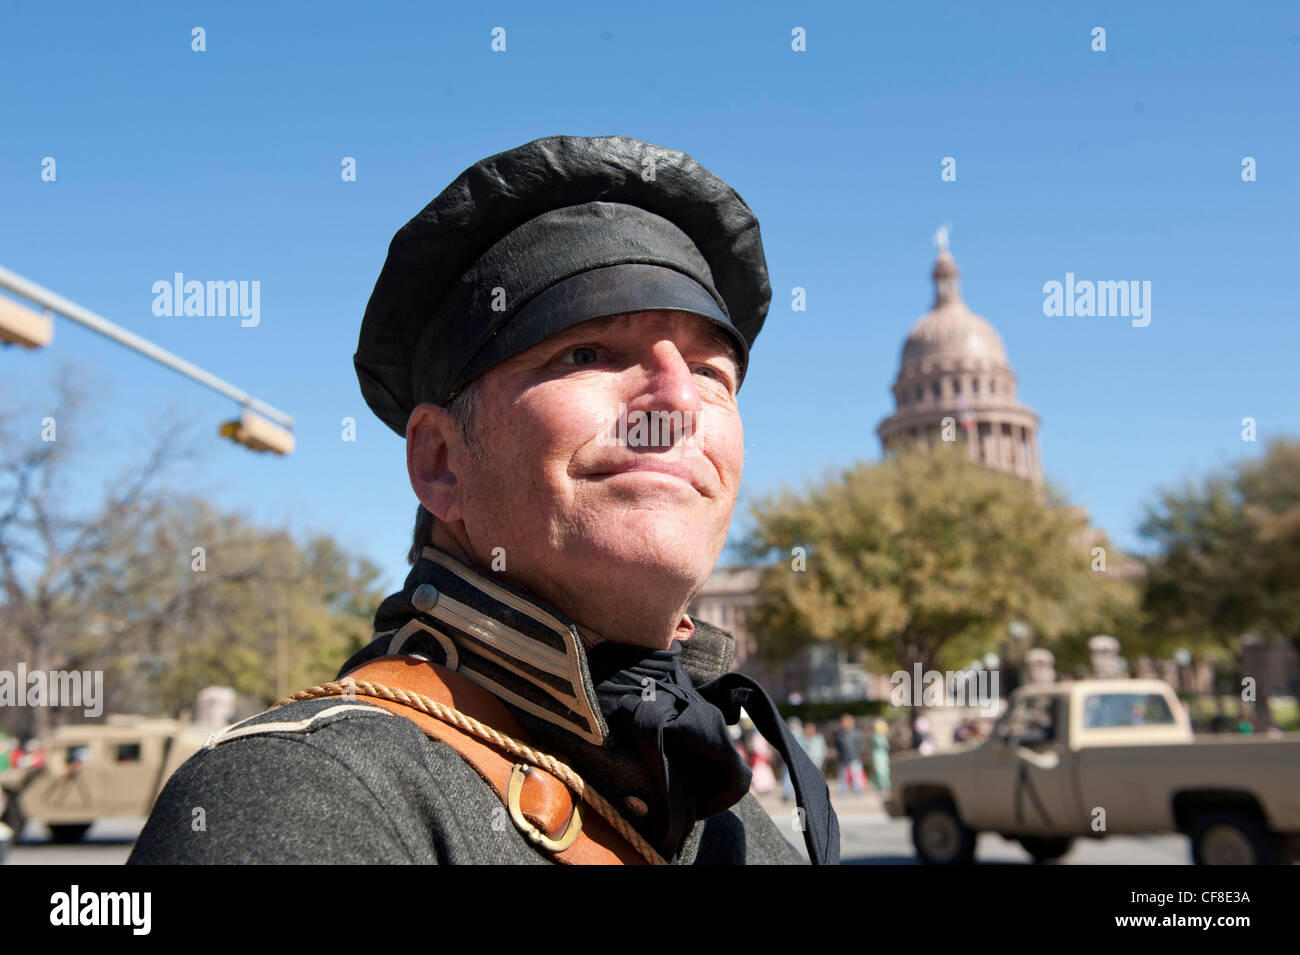 John Tyler of Austin, dressed as a Texas soldier, pauses at the State Capitol as Texas Independence Day on March - Stock Image